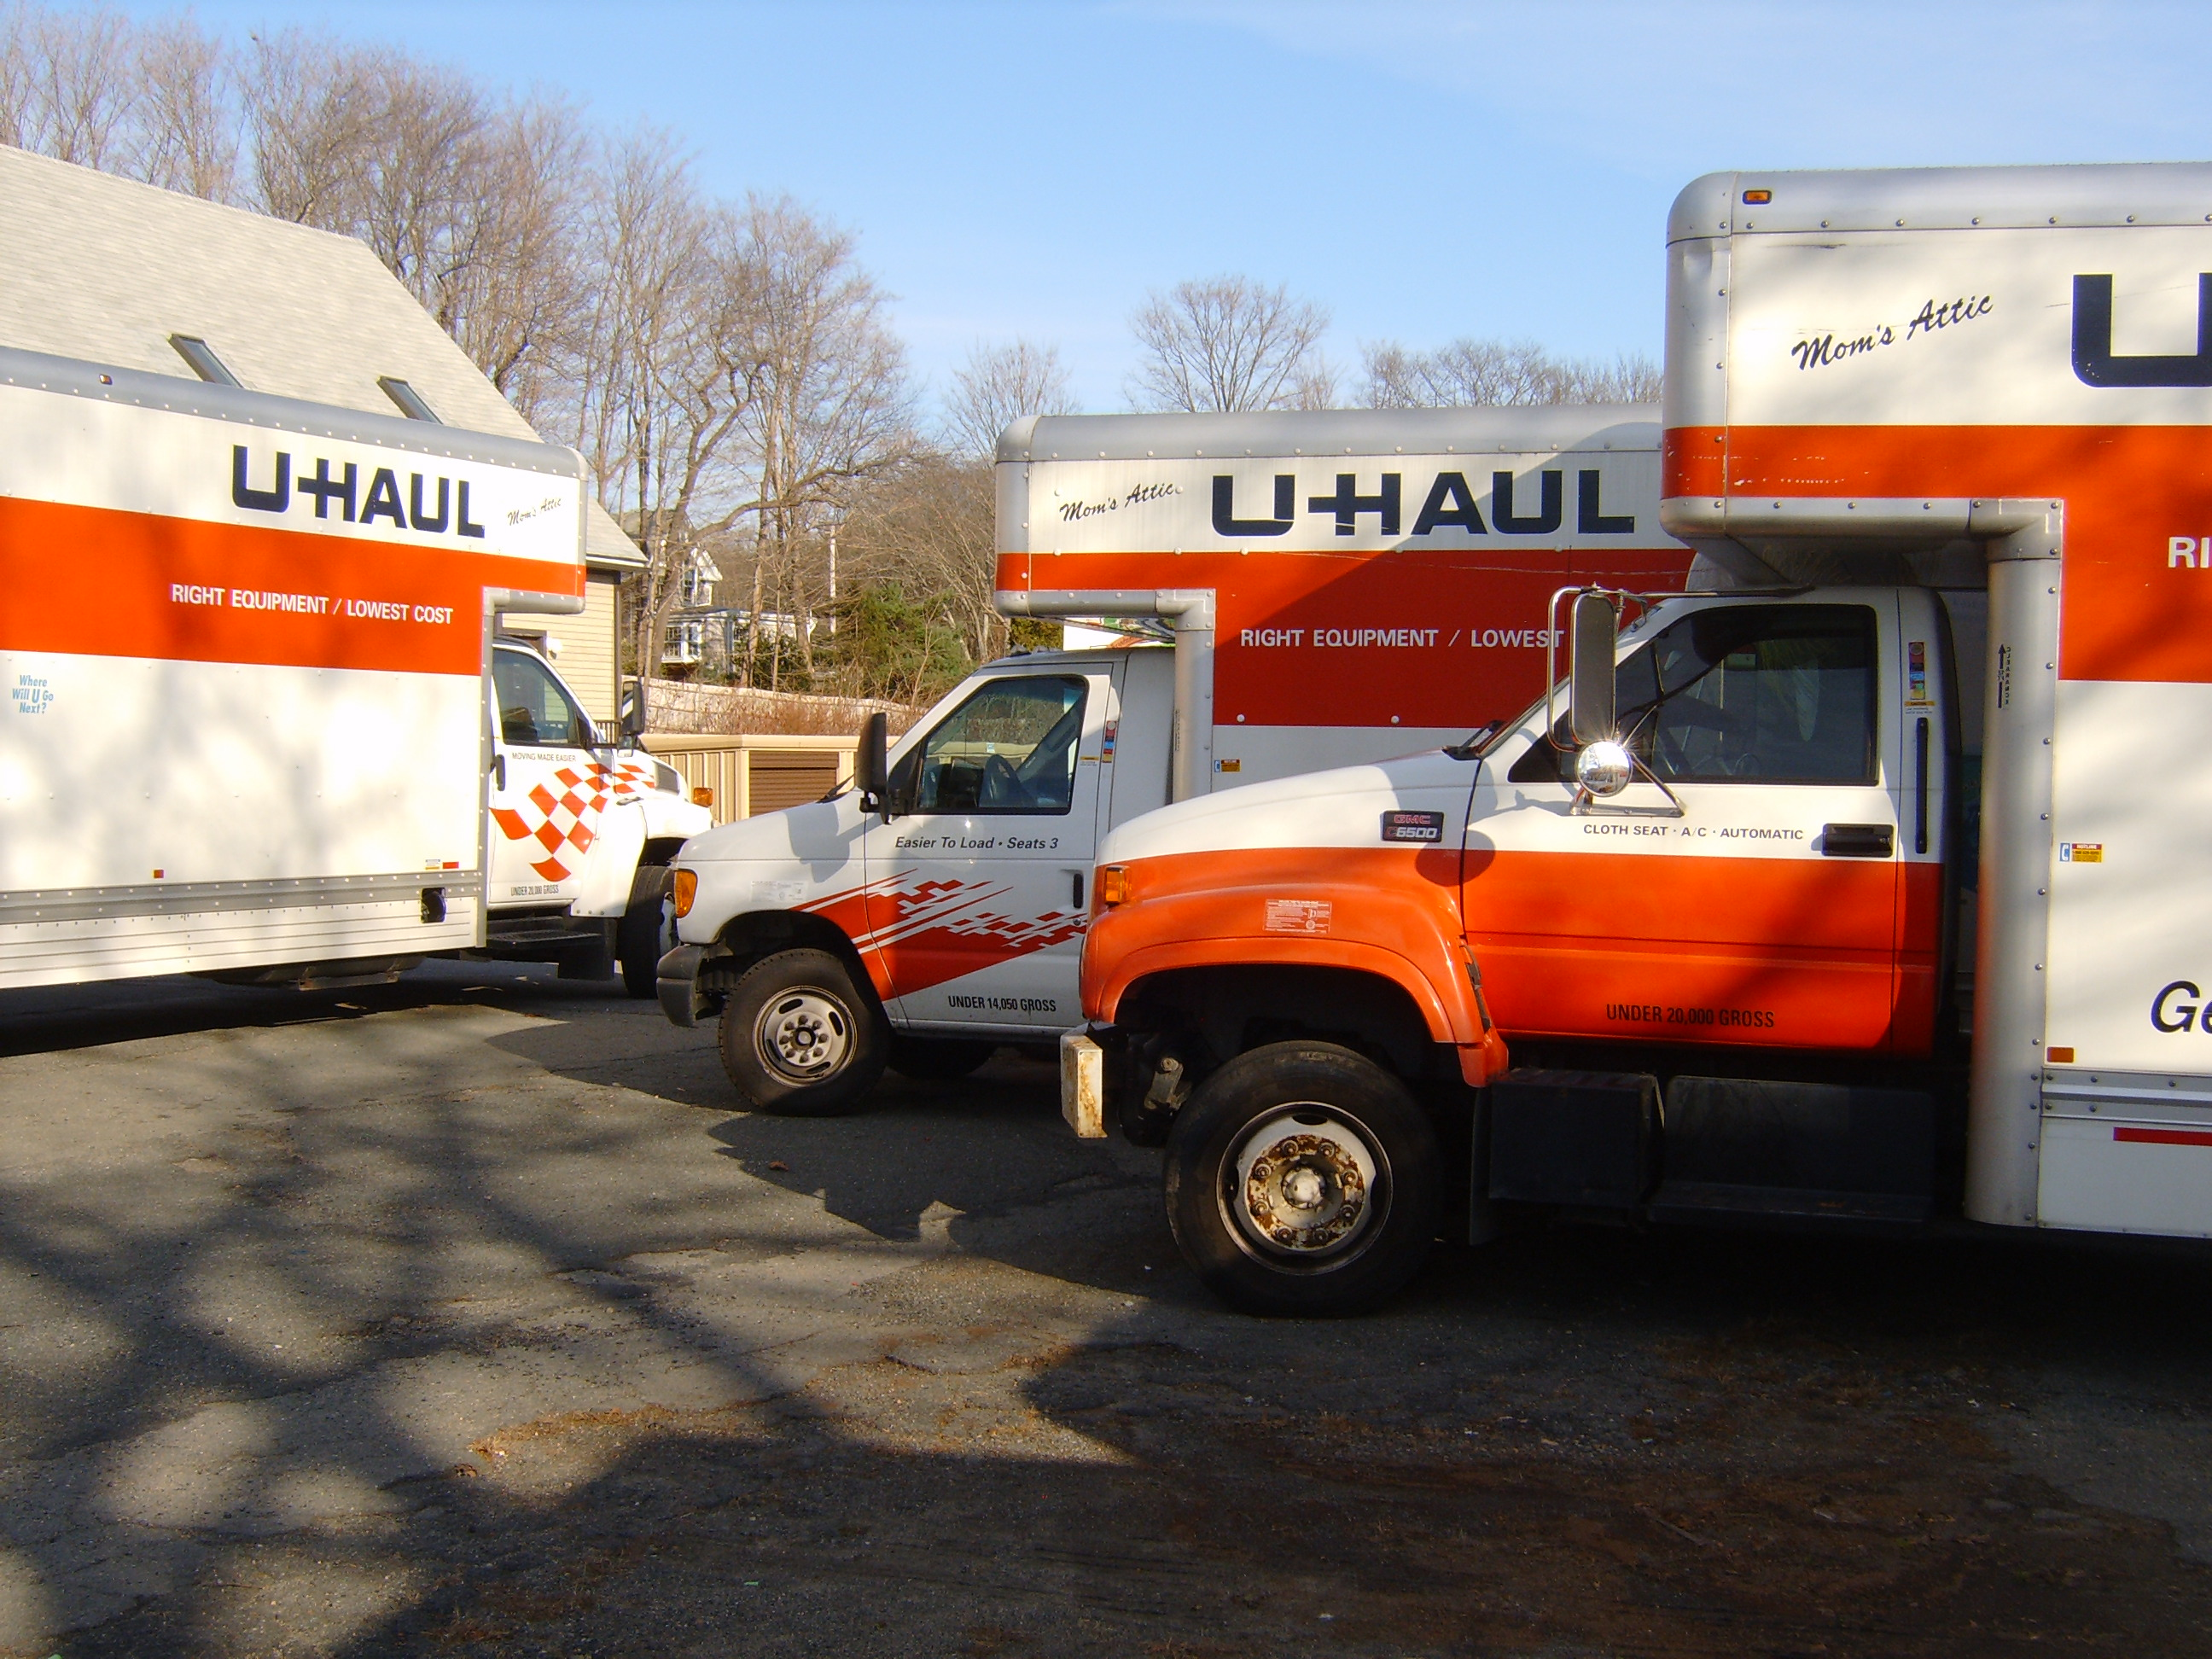 Full-service U-Haul facility